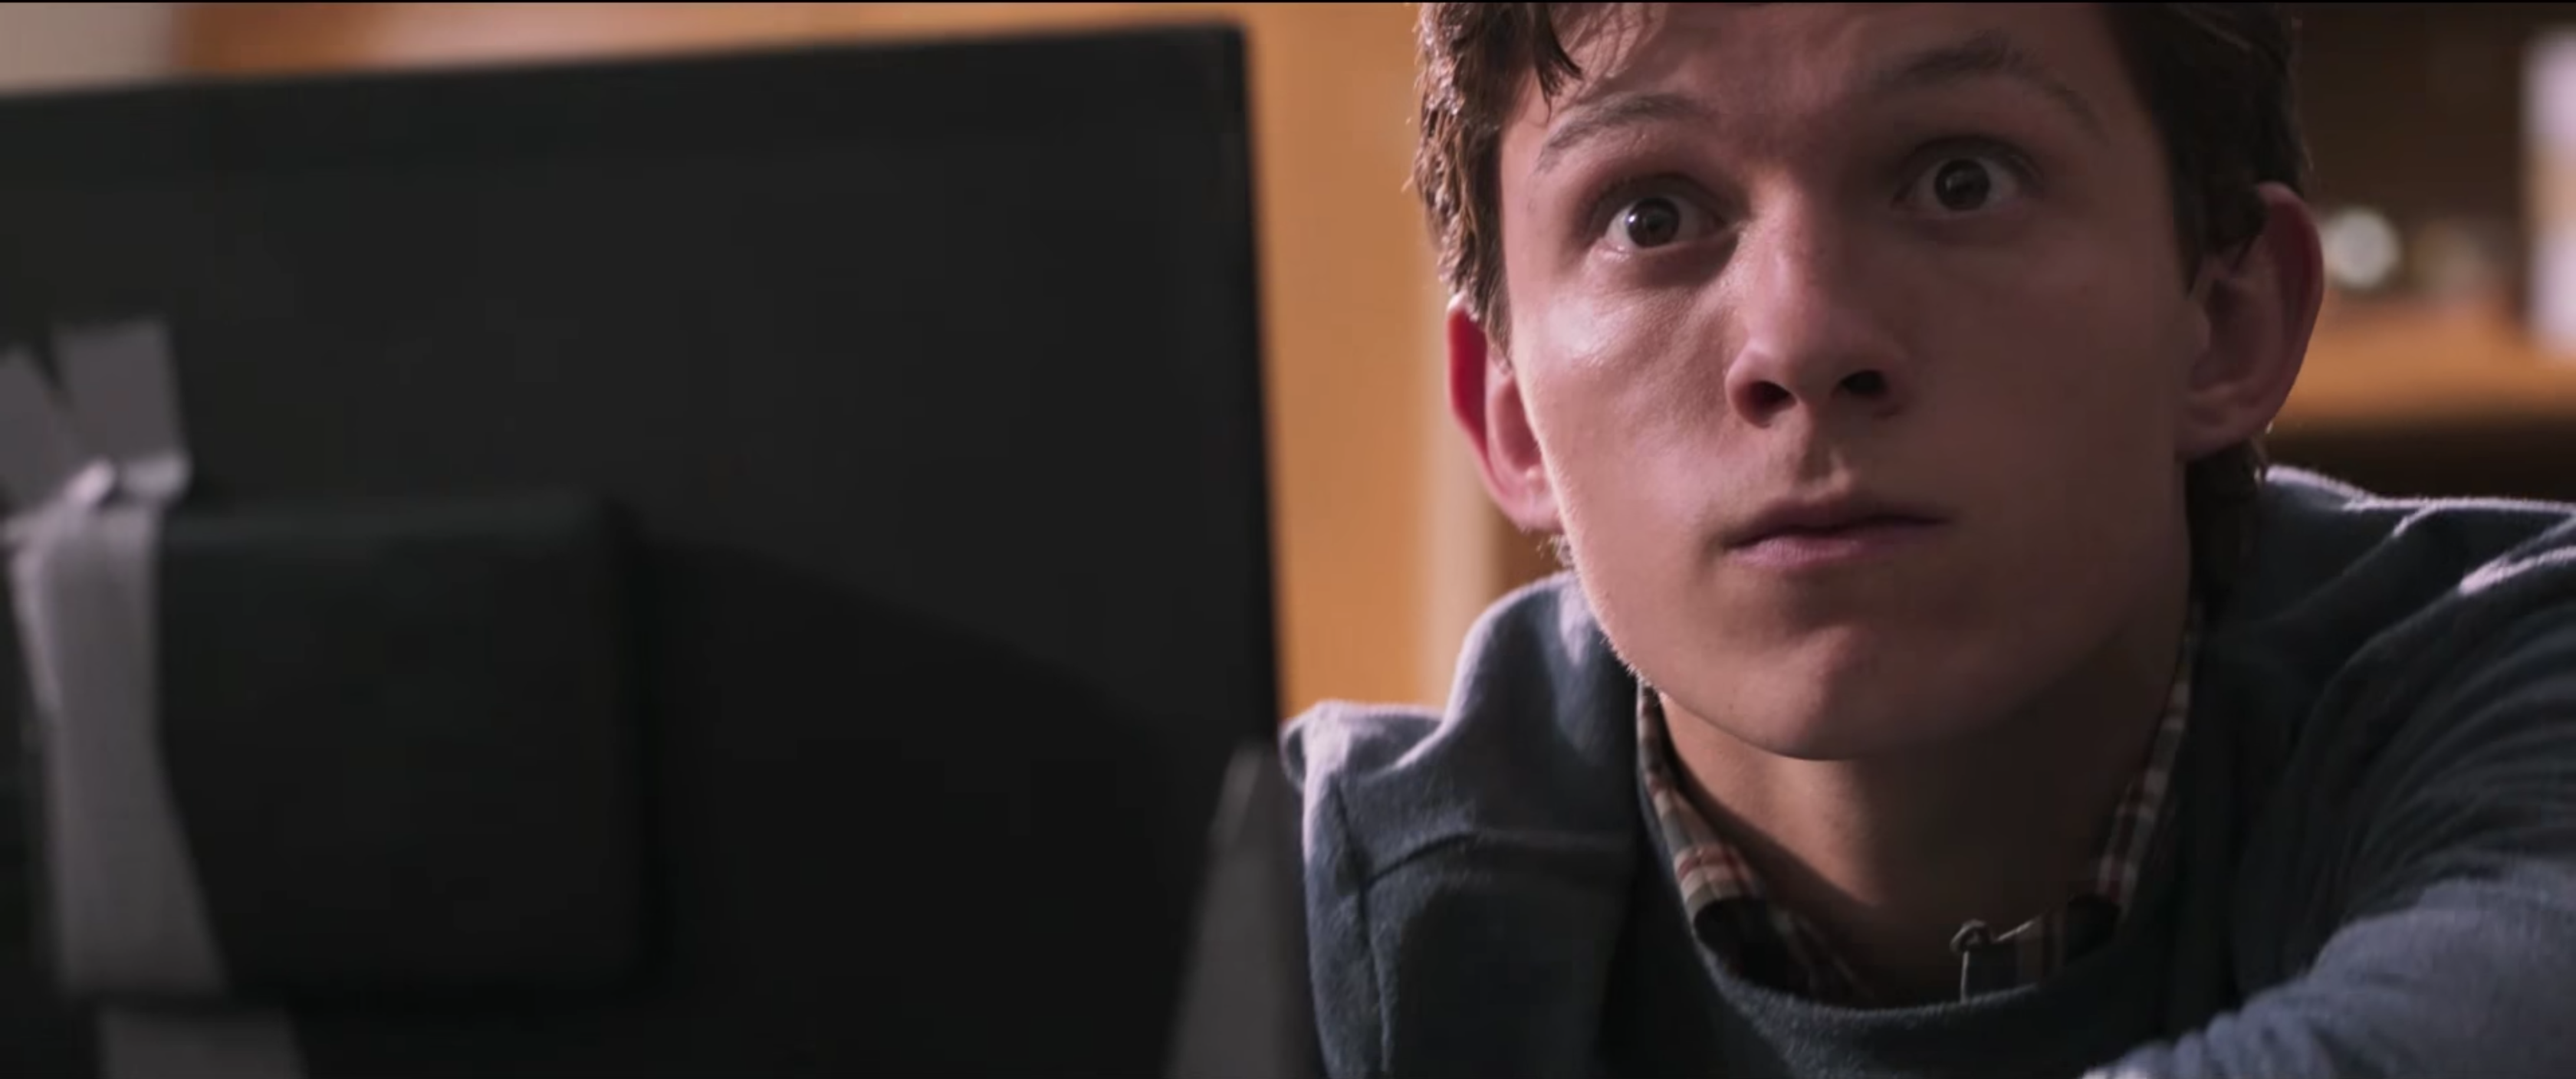 new spider man homecoming actions images with vulture 2016 images